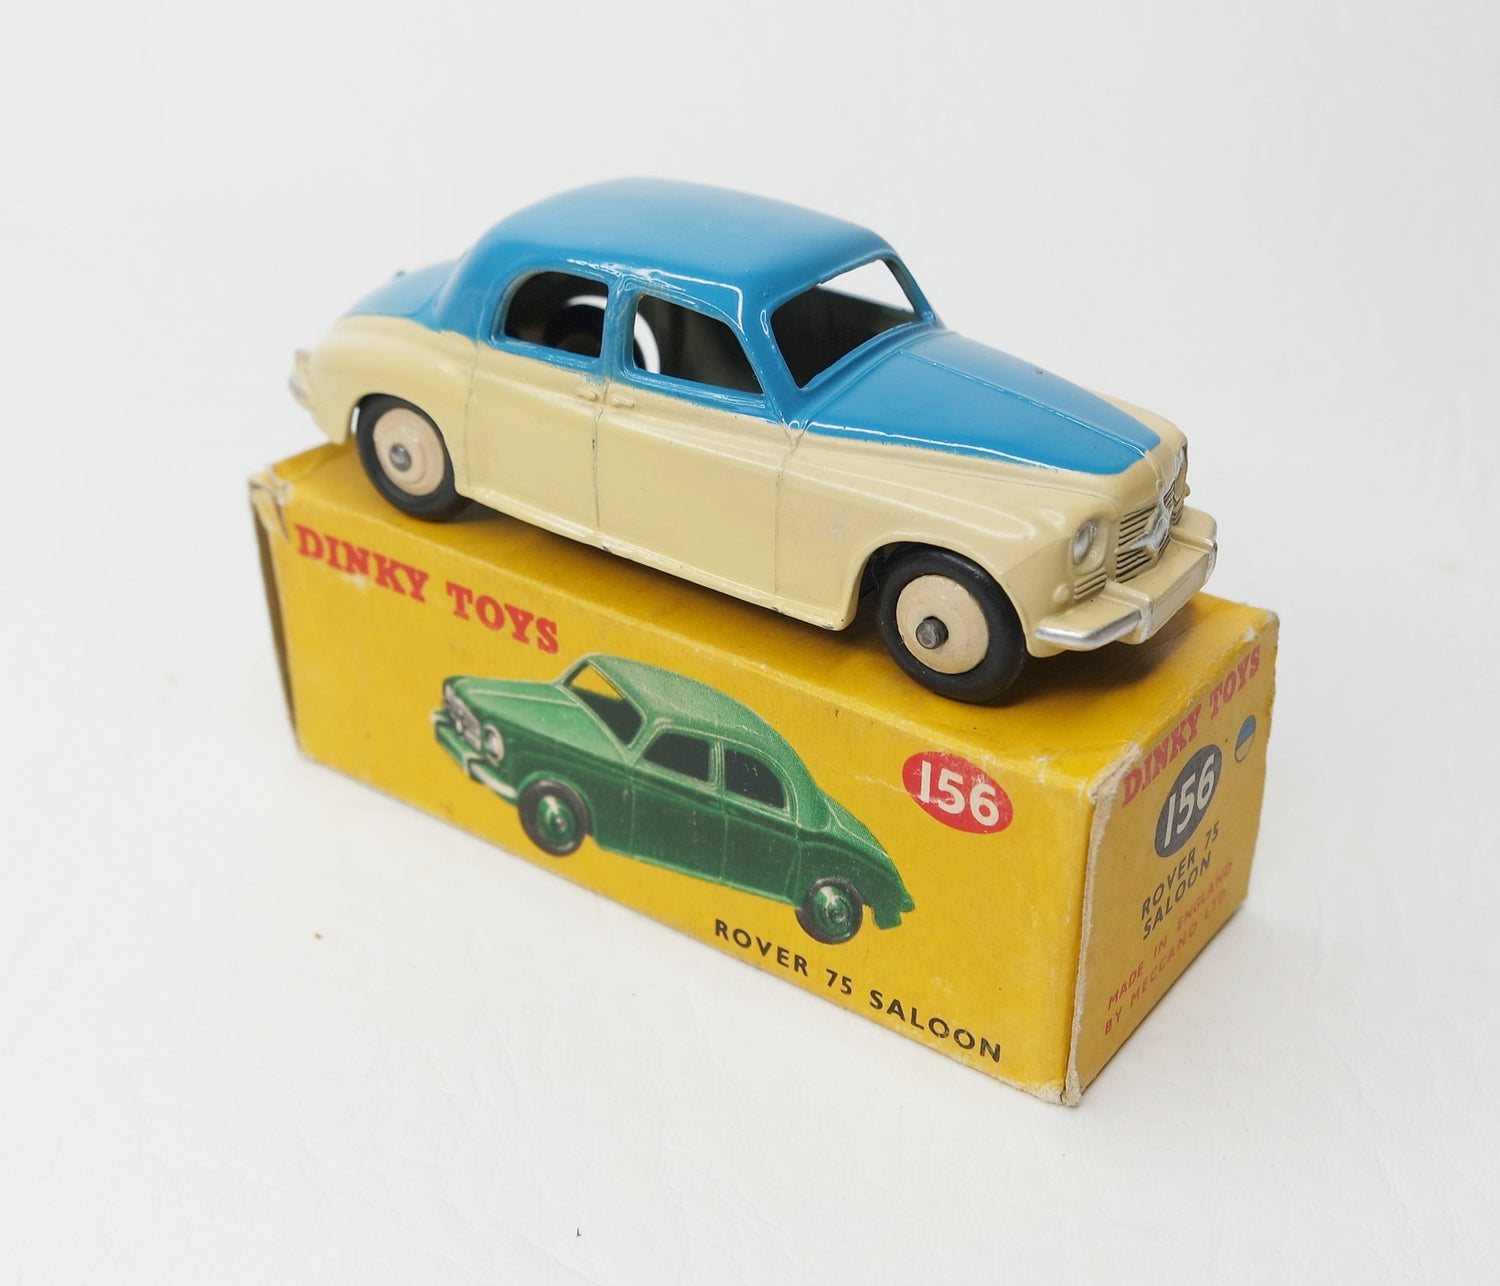 Dinky Toys 156 Rover 75 Very Near Mint/Boxed (C.C)